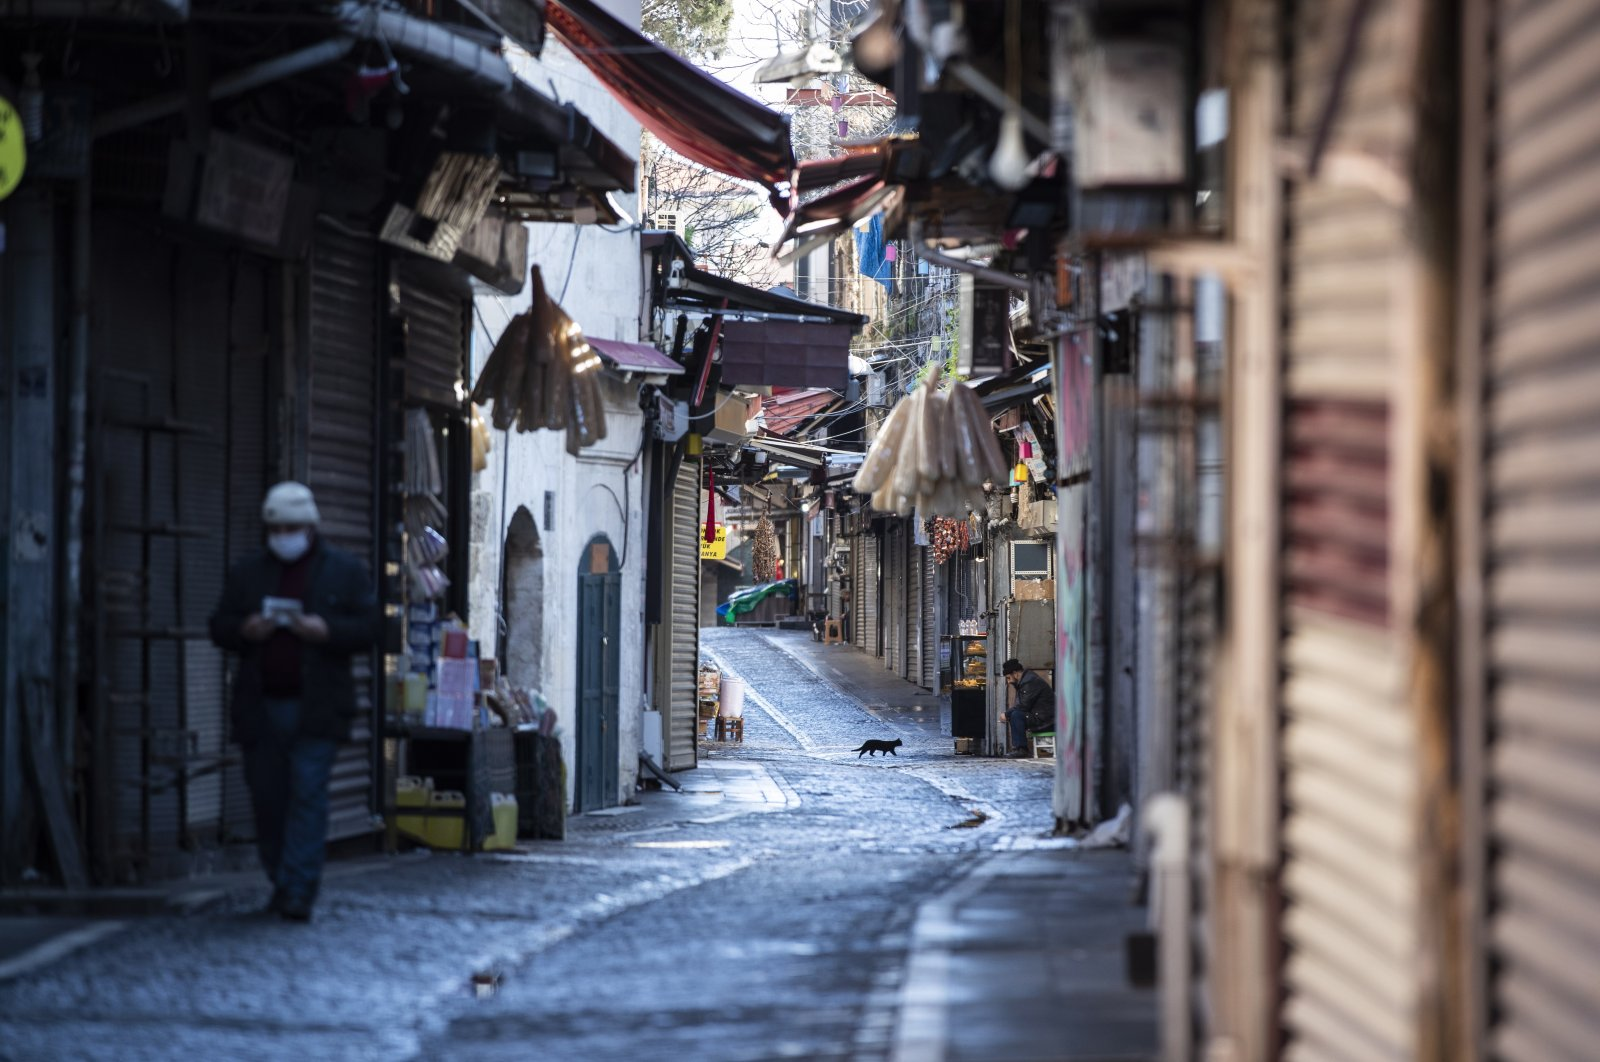 A street vendor sits near closed shops in a deserted street during the lockdown in Istanbul, Turkey, Jan. 24, 2021. (EPA Photo)